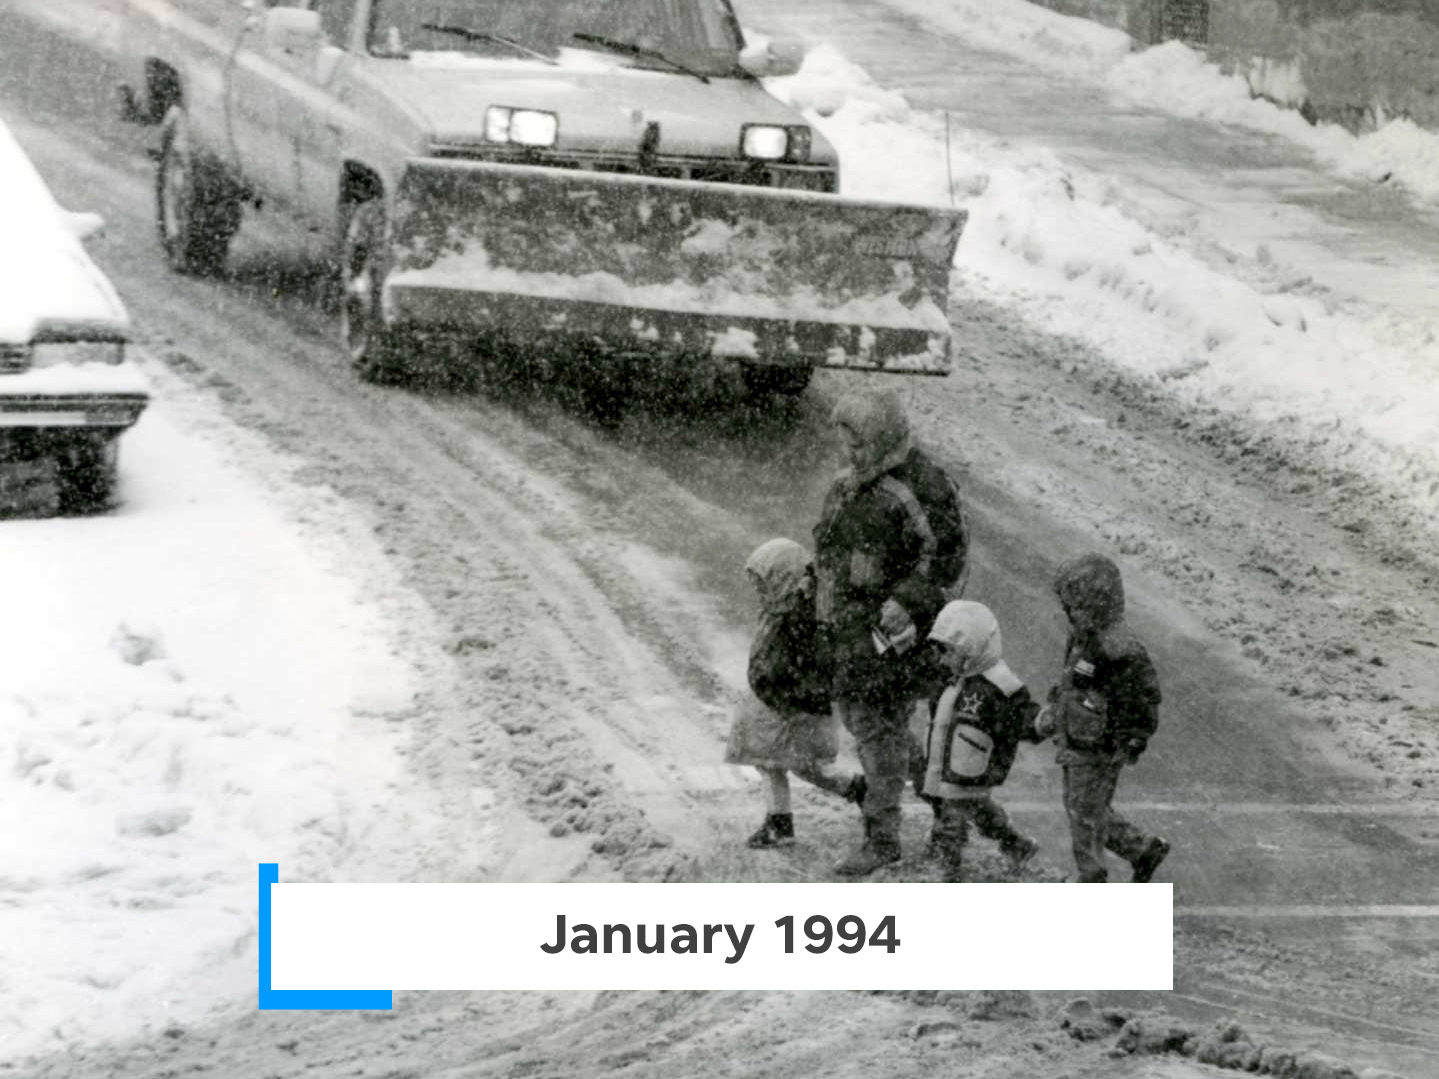 The ice storm in early January 1994 created a mess of snow, ice and rain from West Virginia to Maine.